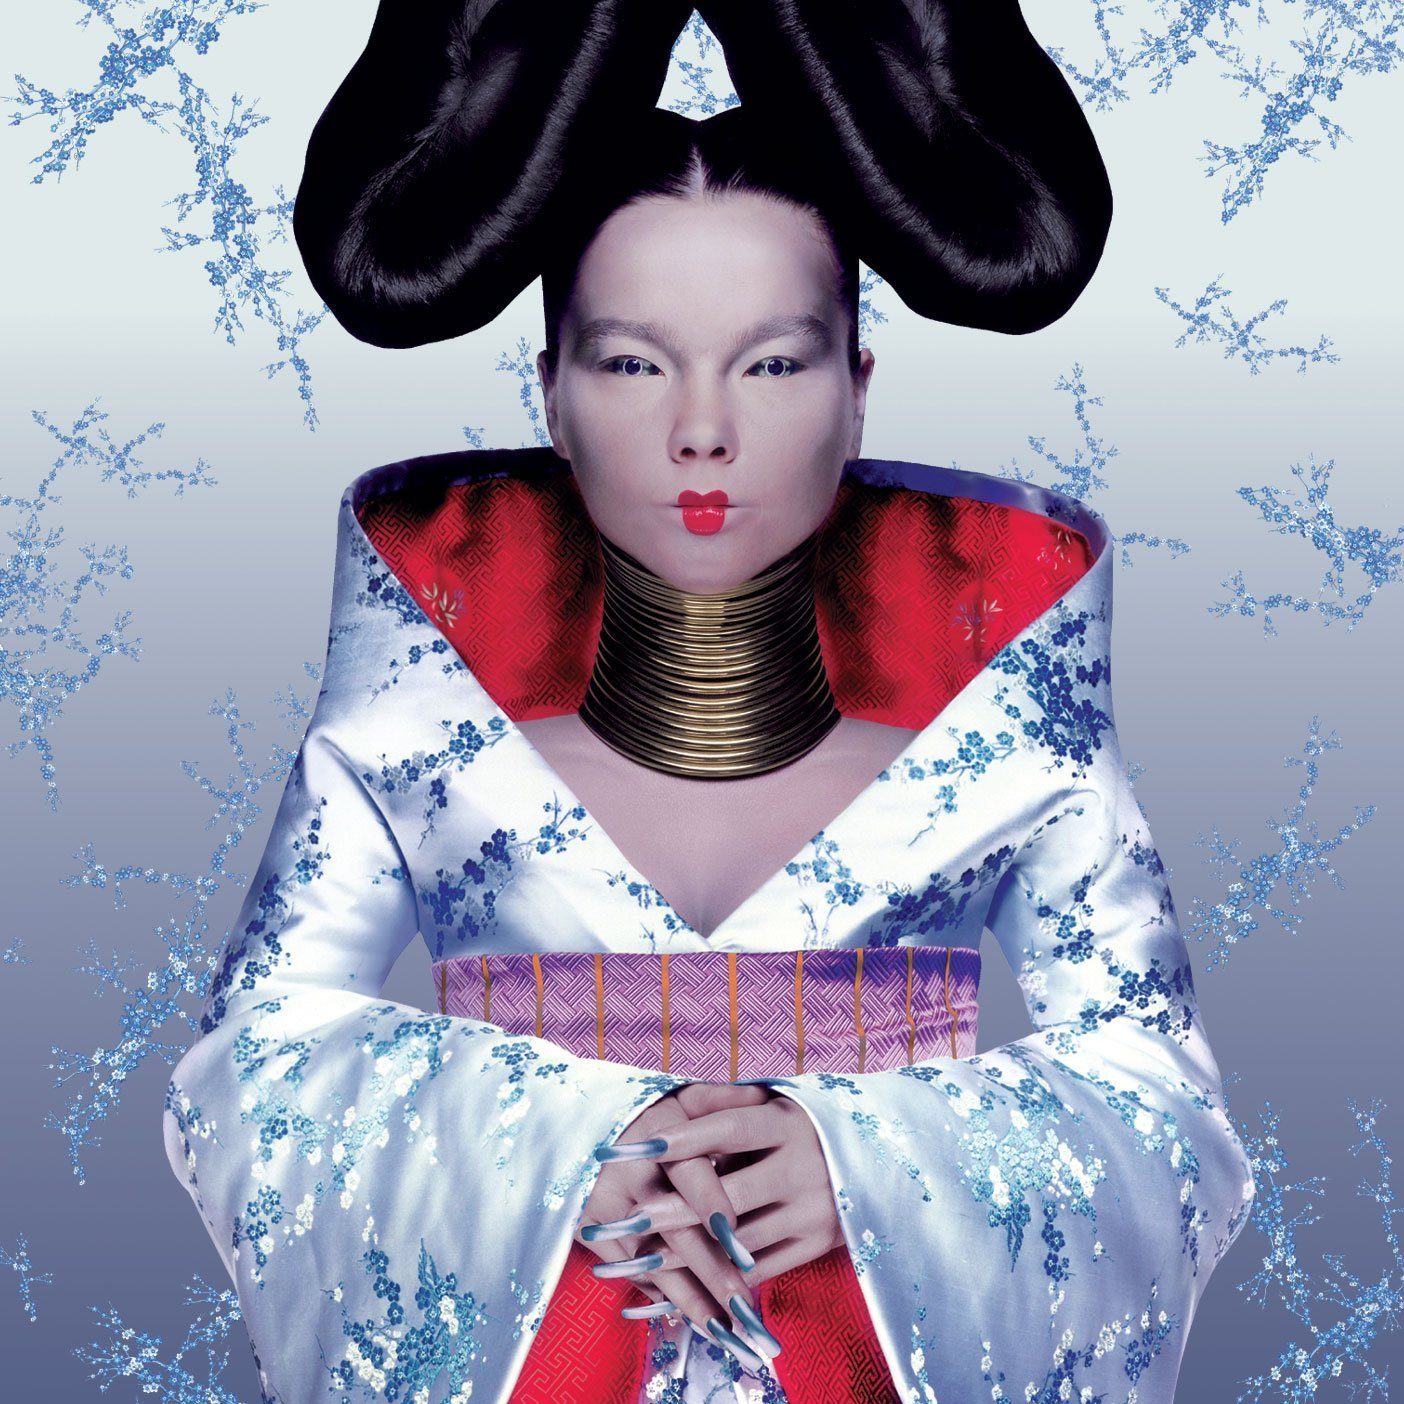 Bjork Homogenic Album Cover